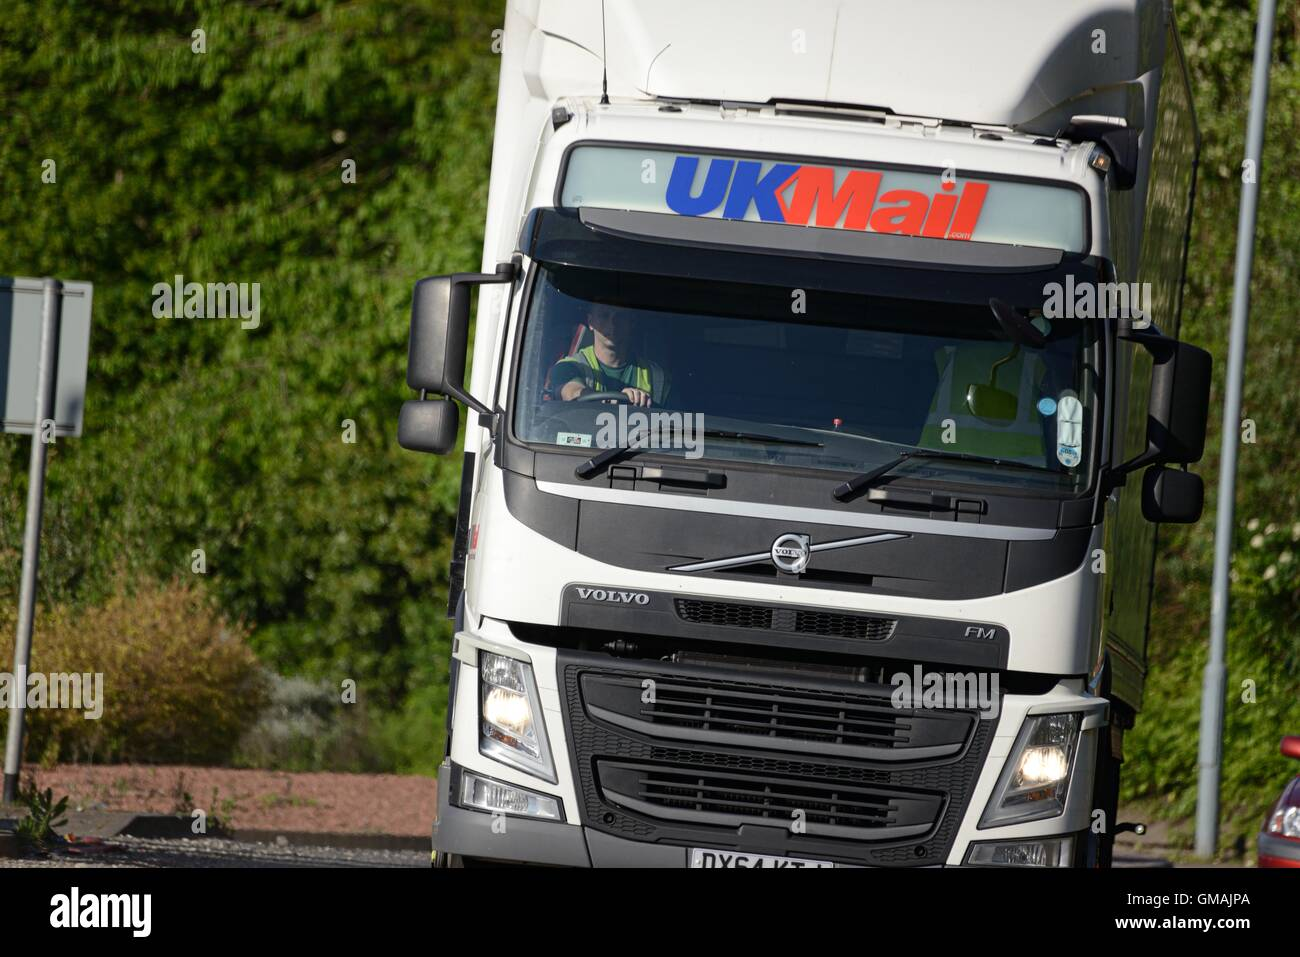 Volvo Fh Stock Photos & Volvo Fh Stock Images - Alamy